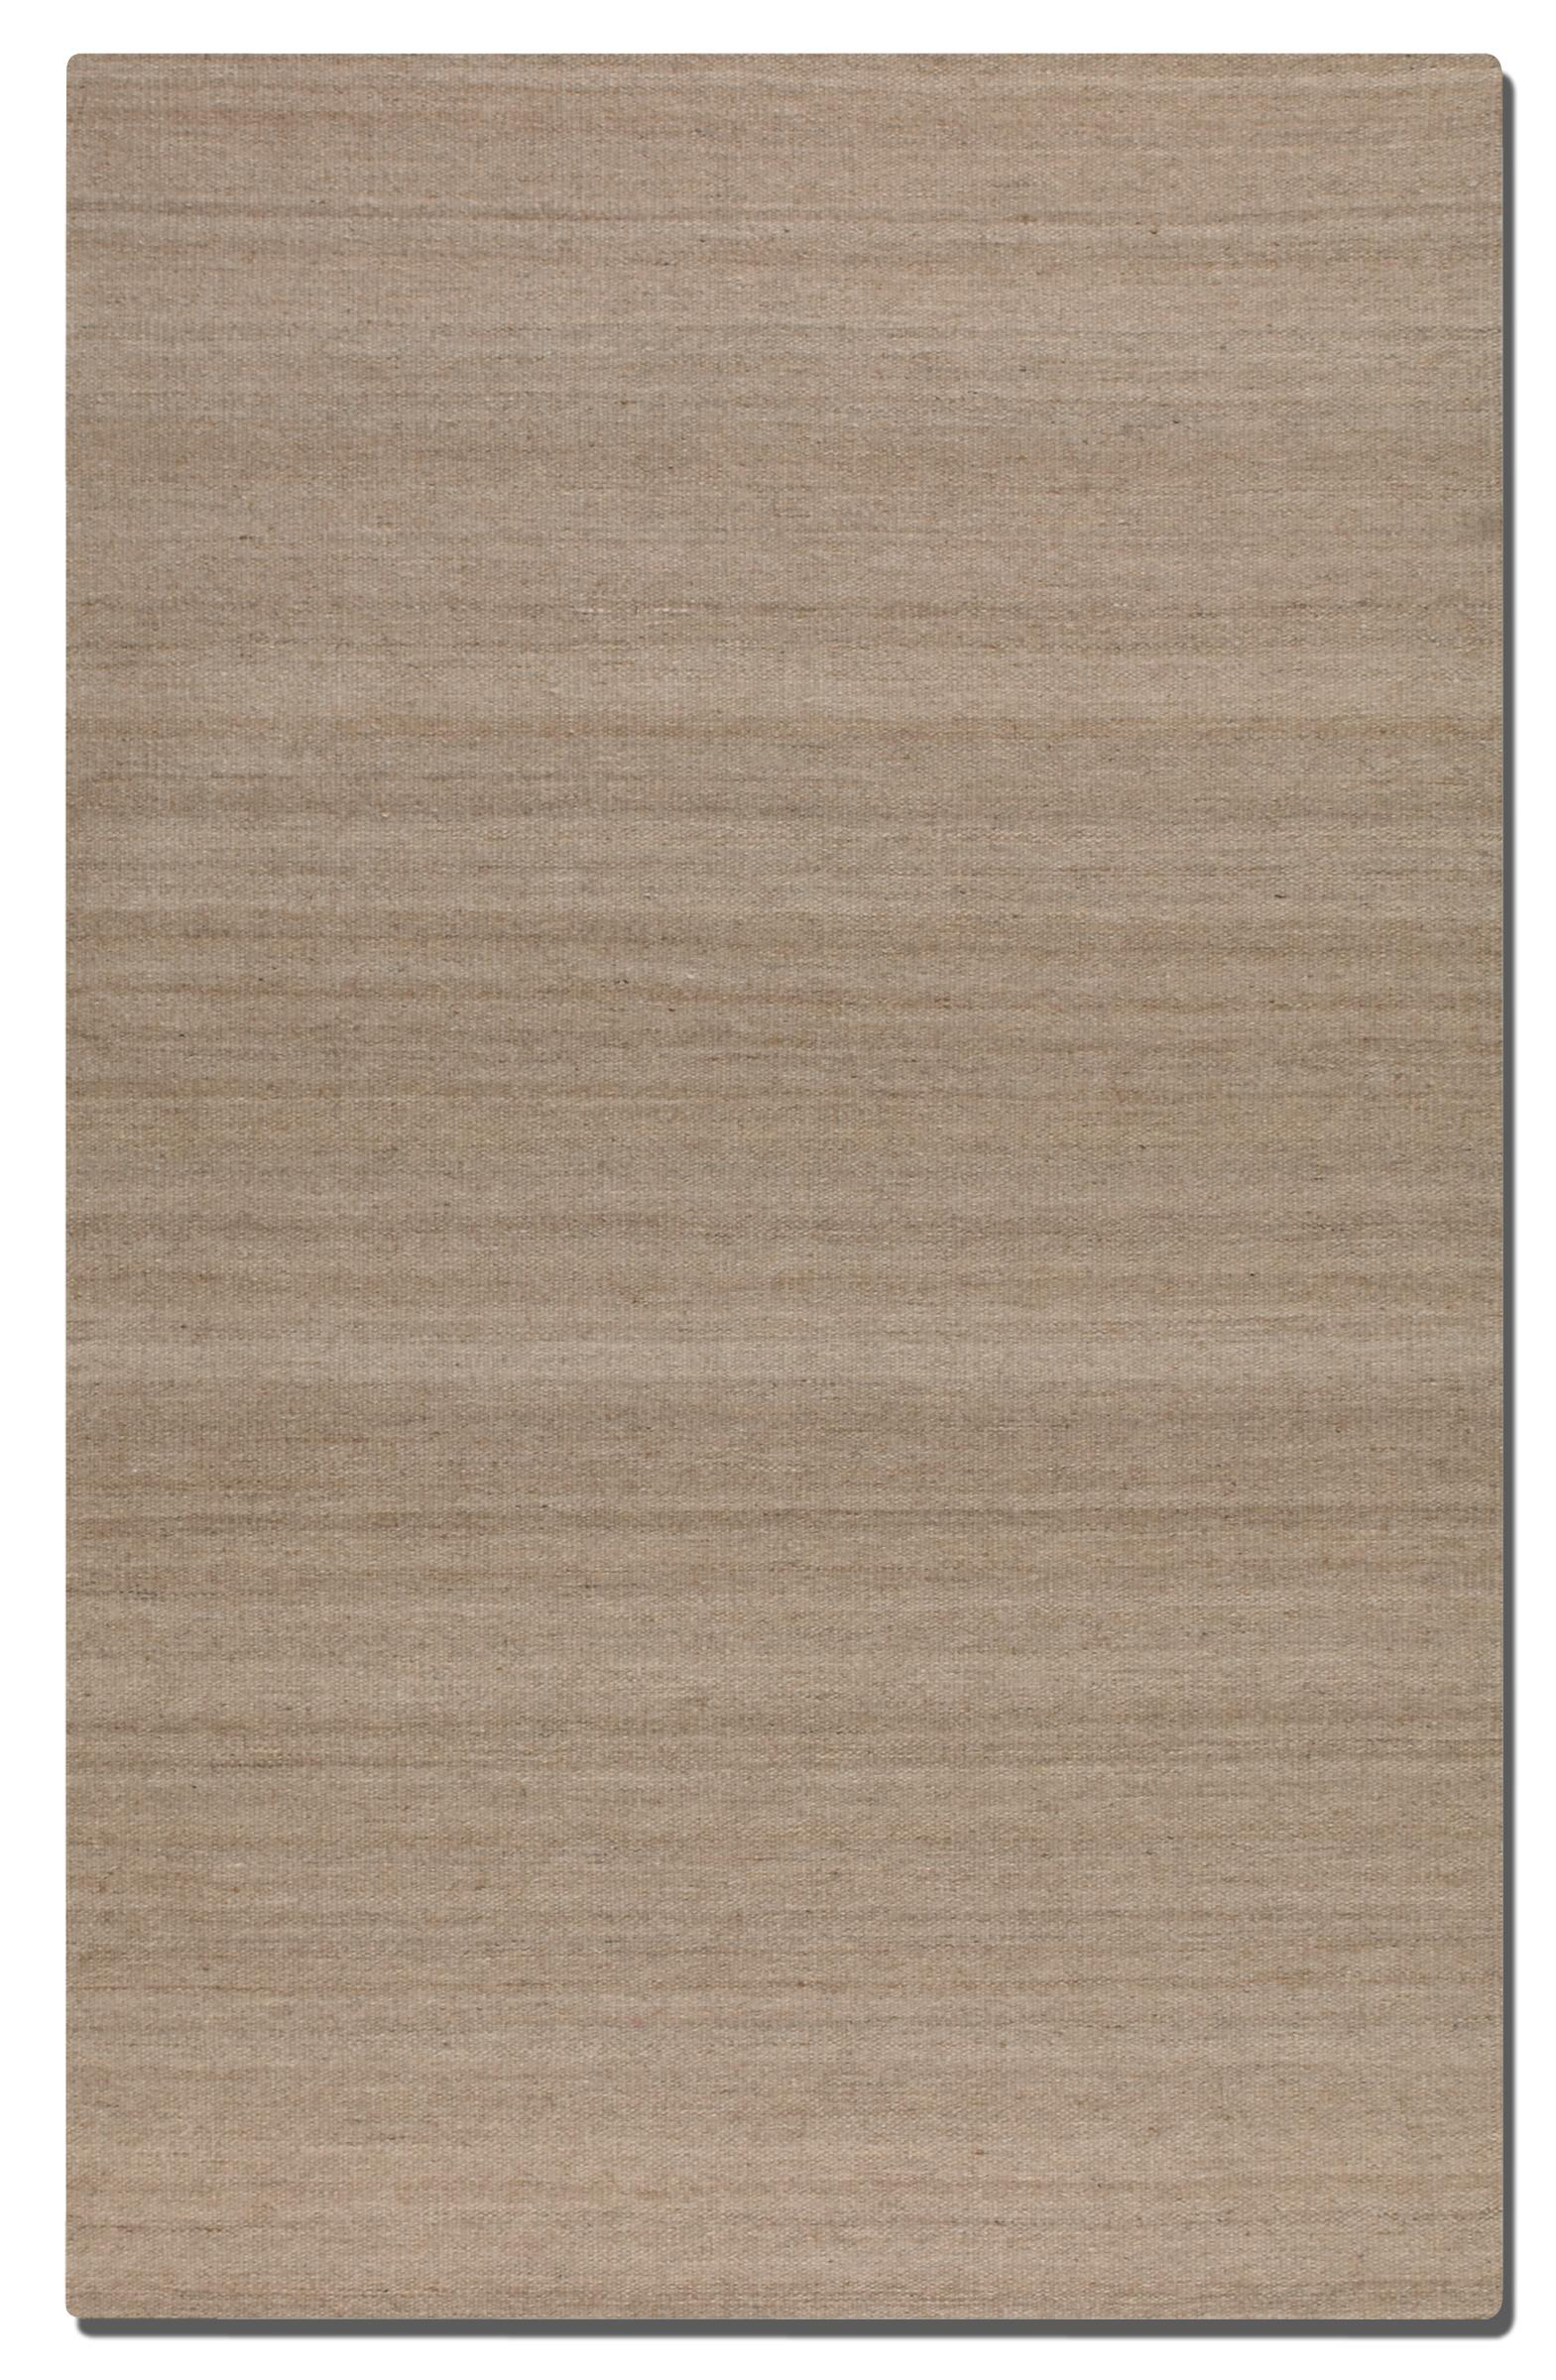 Uttermost Rugs Wellington 5 X 8  - Item Number: 71006-5